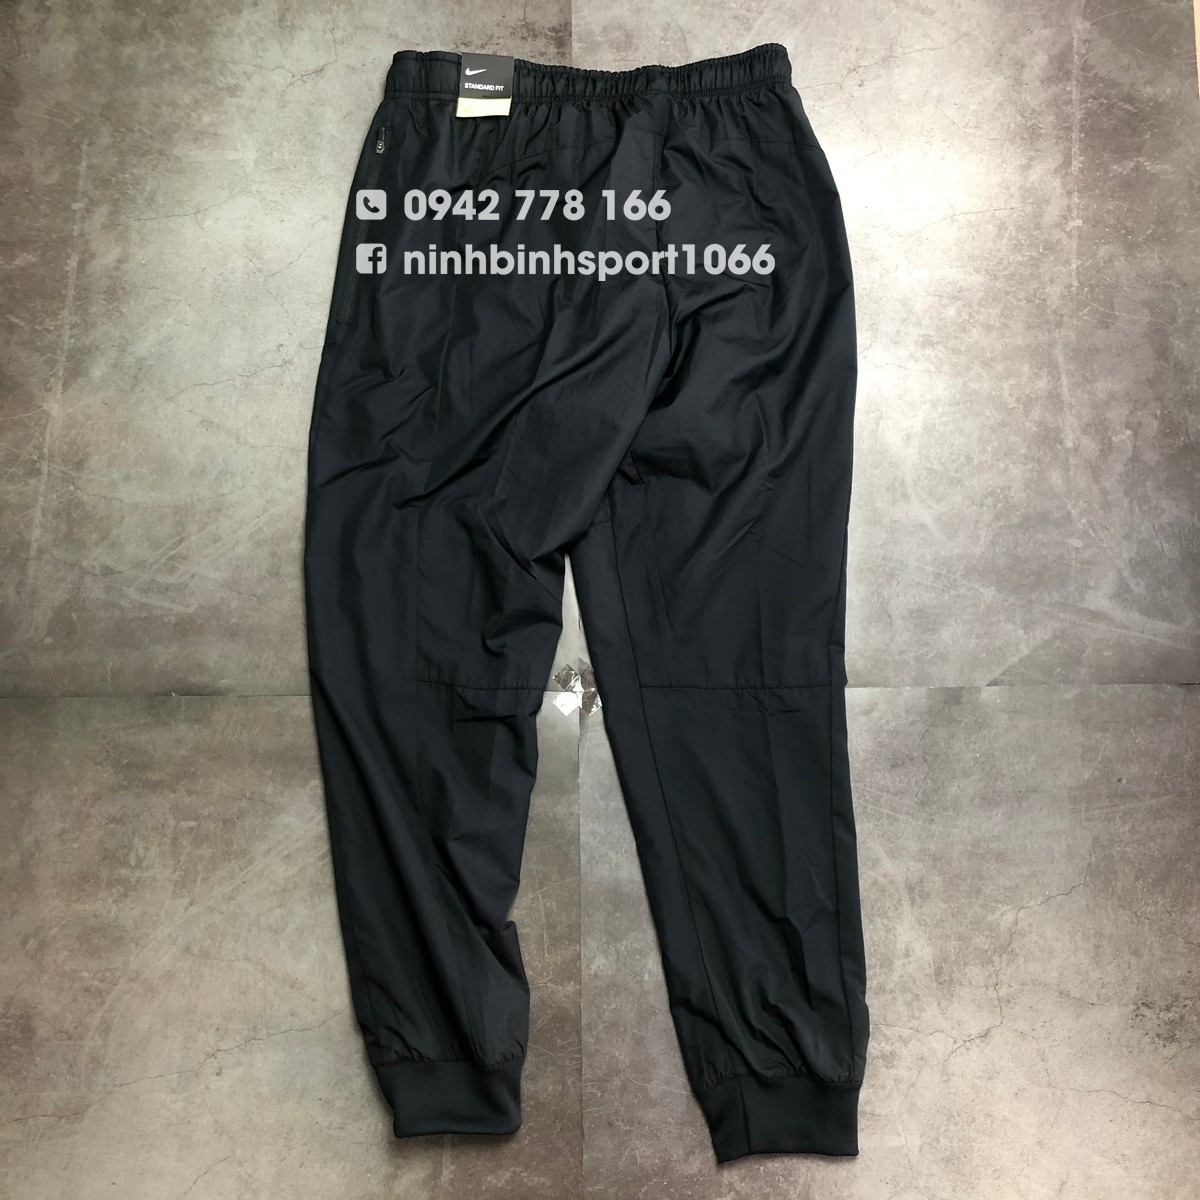 Quần thể thao nam Nike Woven Insulated Pants CU6735-010